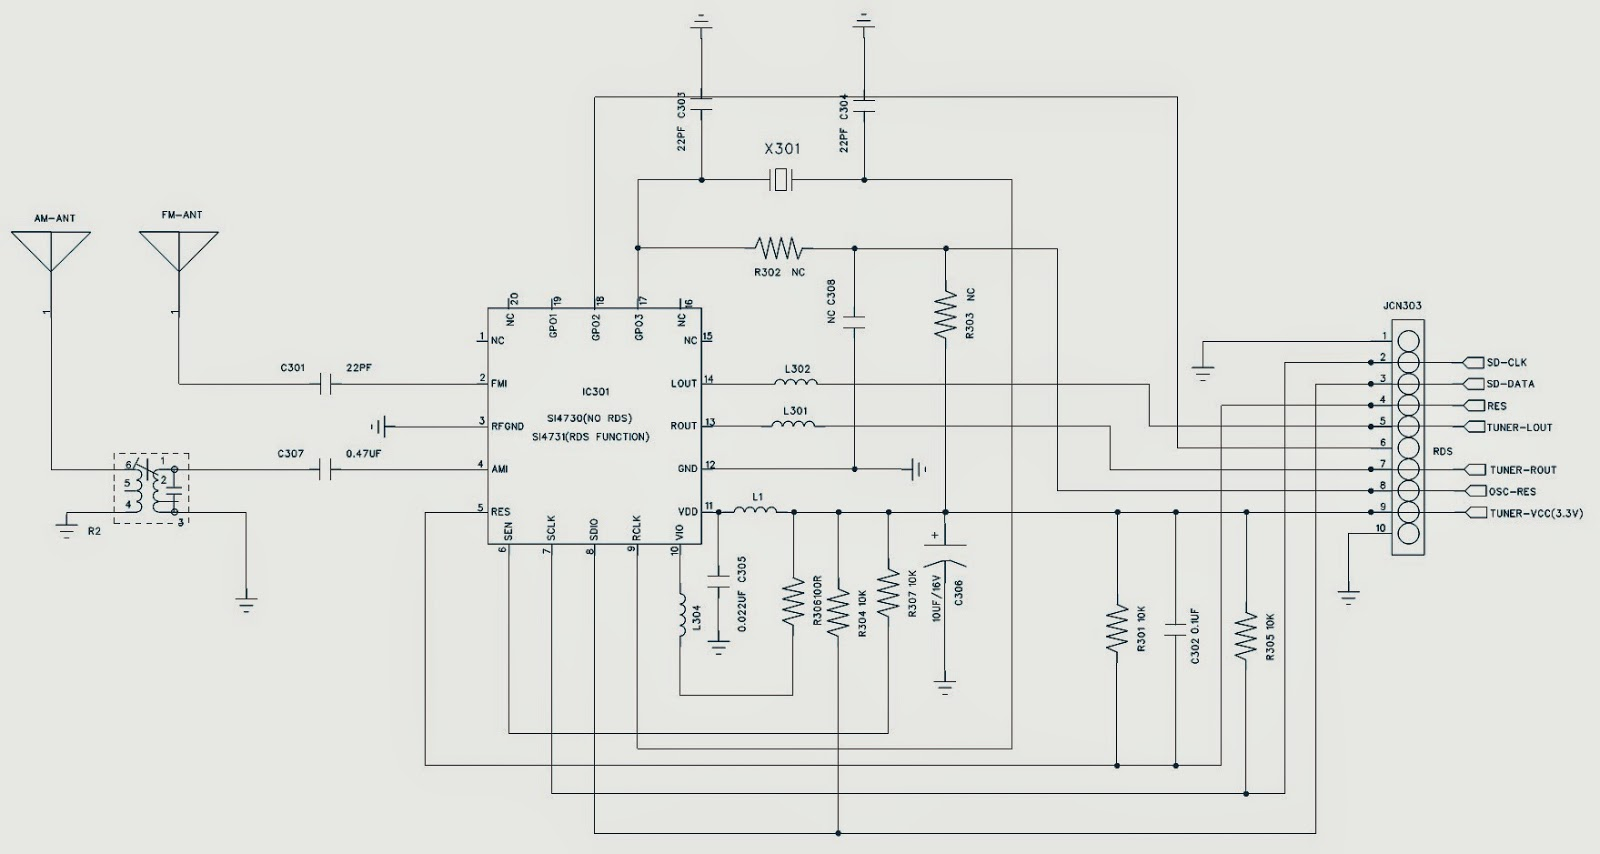 Push Pull Smps Circuit Diagram Electrical Wiring Voltage Divider Powersupplycircuit Seekiccom Schematic For Electronics Diagrams Design Power Supply